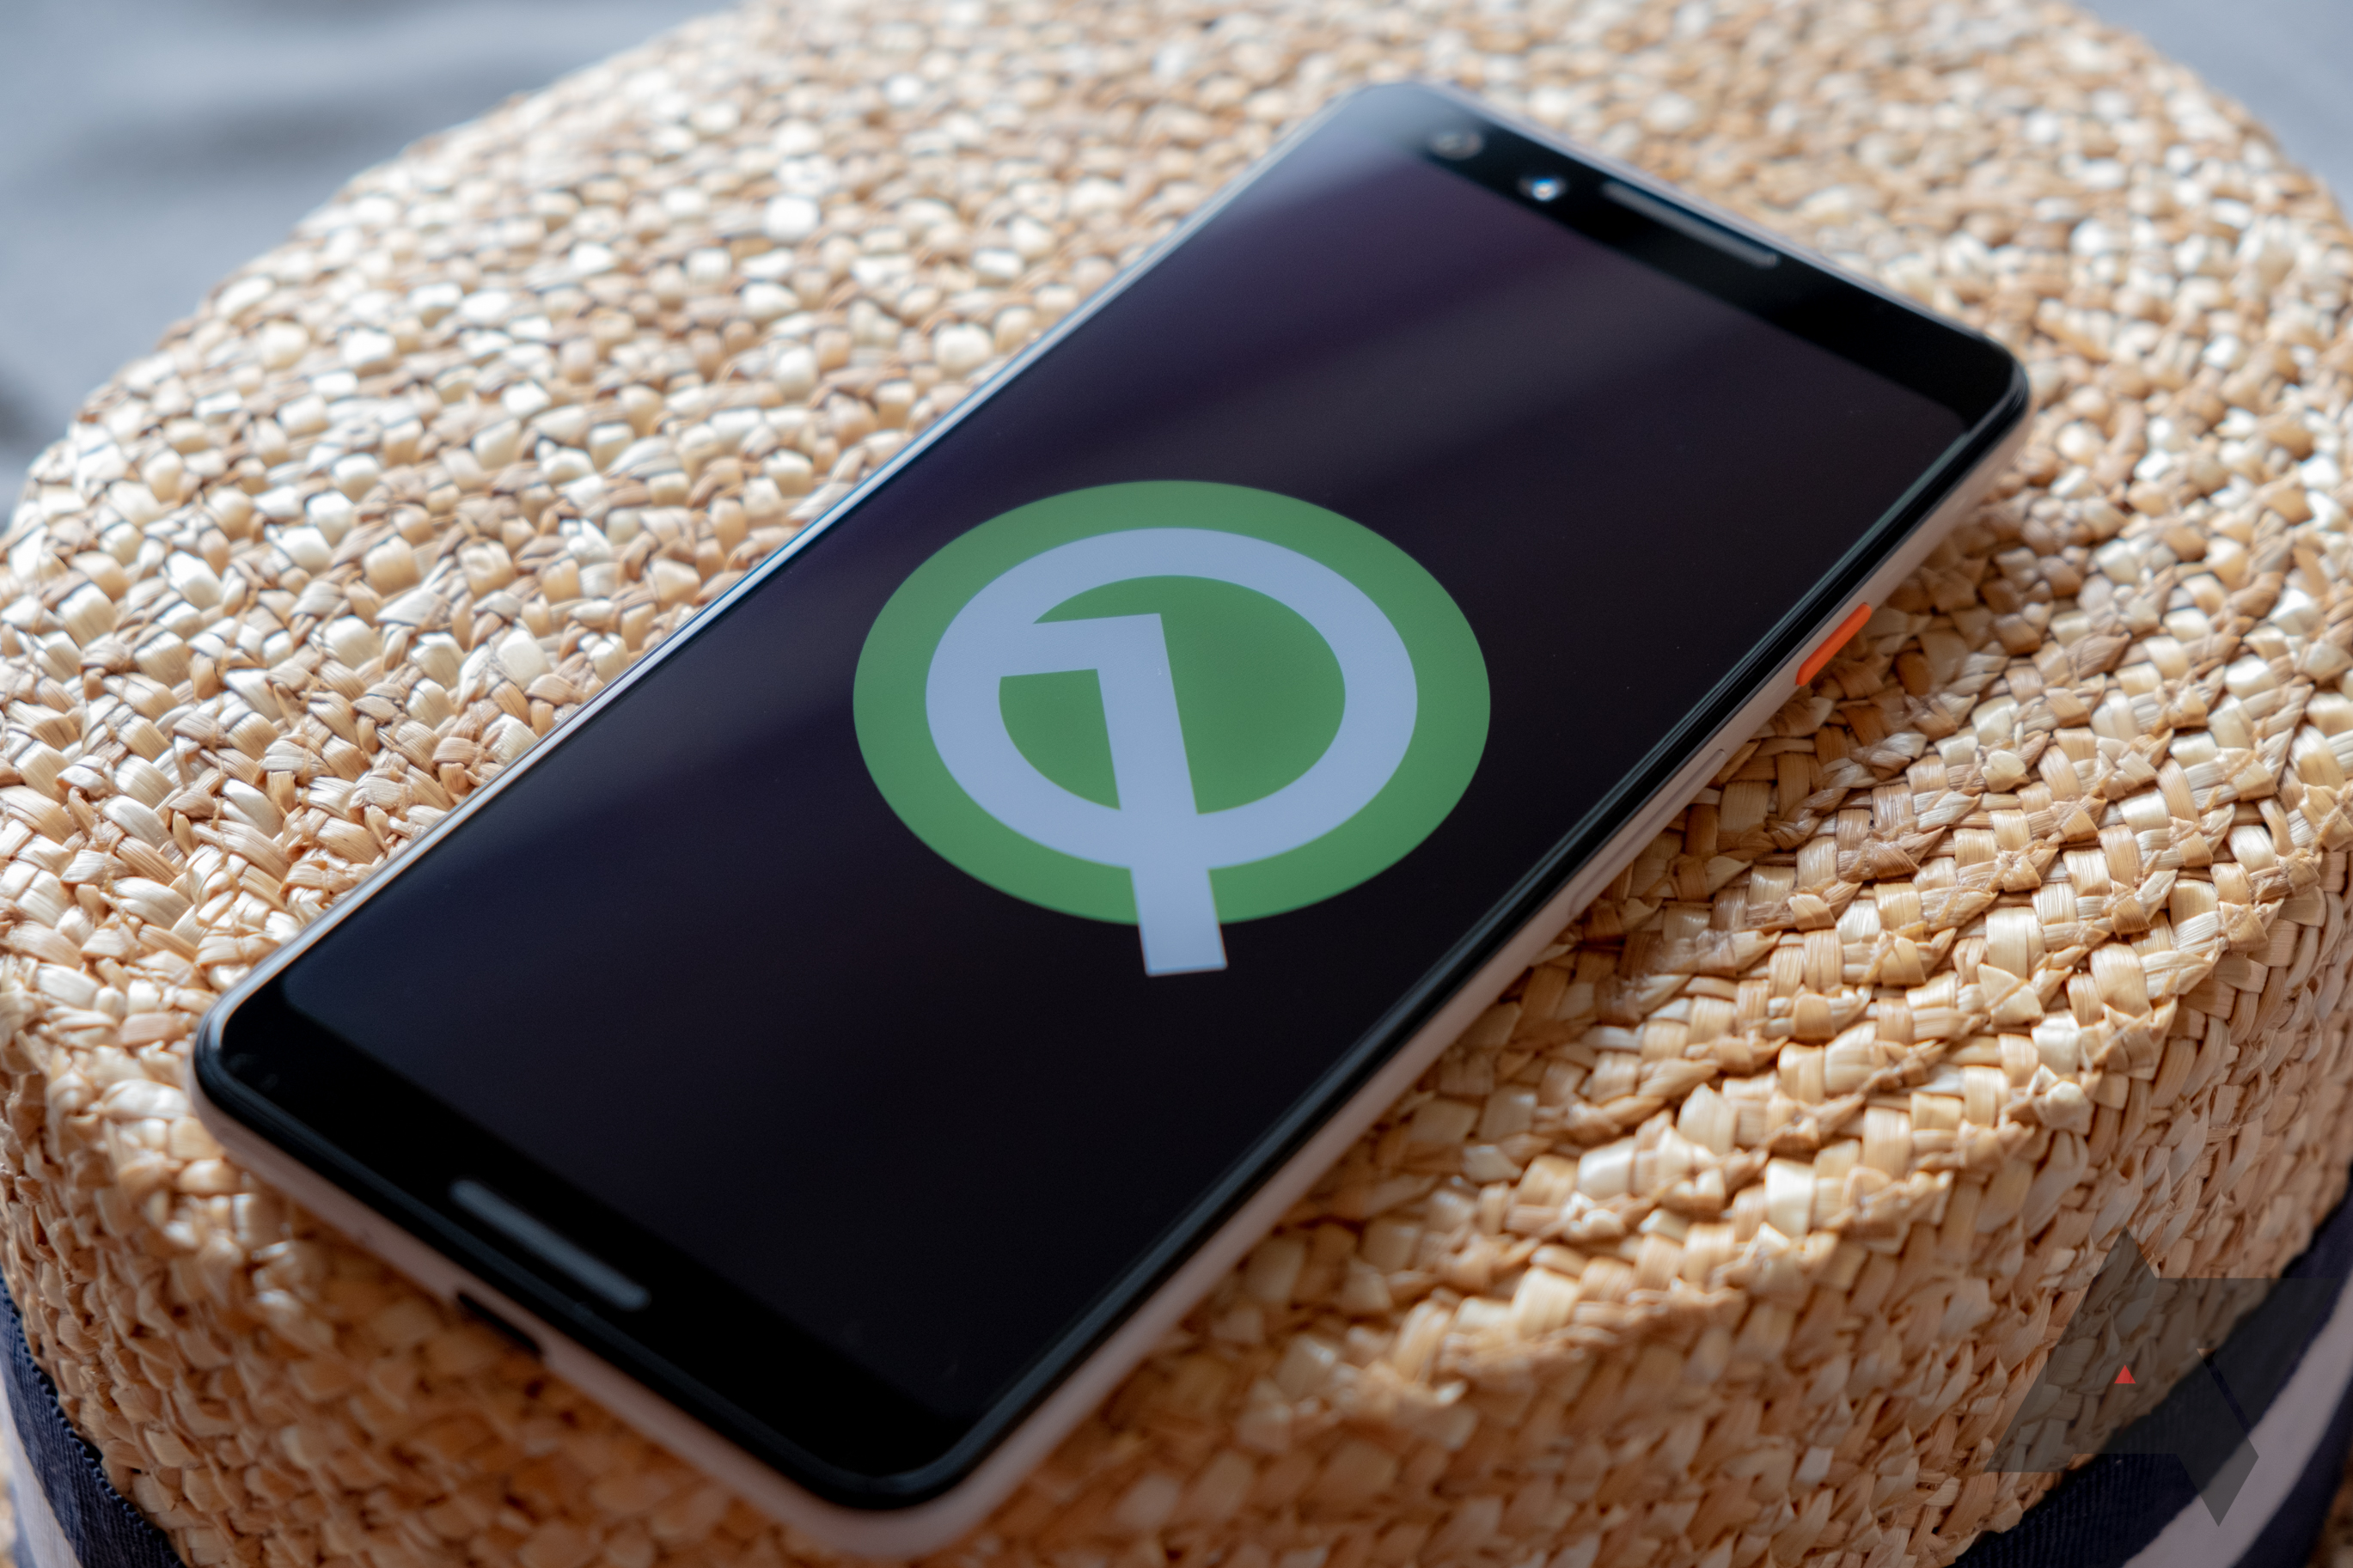 After a week with Android Q Beta, here are all the little changes we've noticed